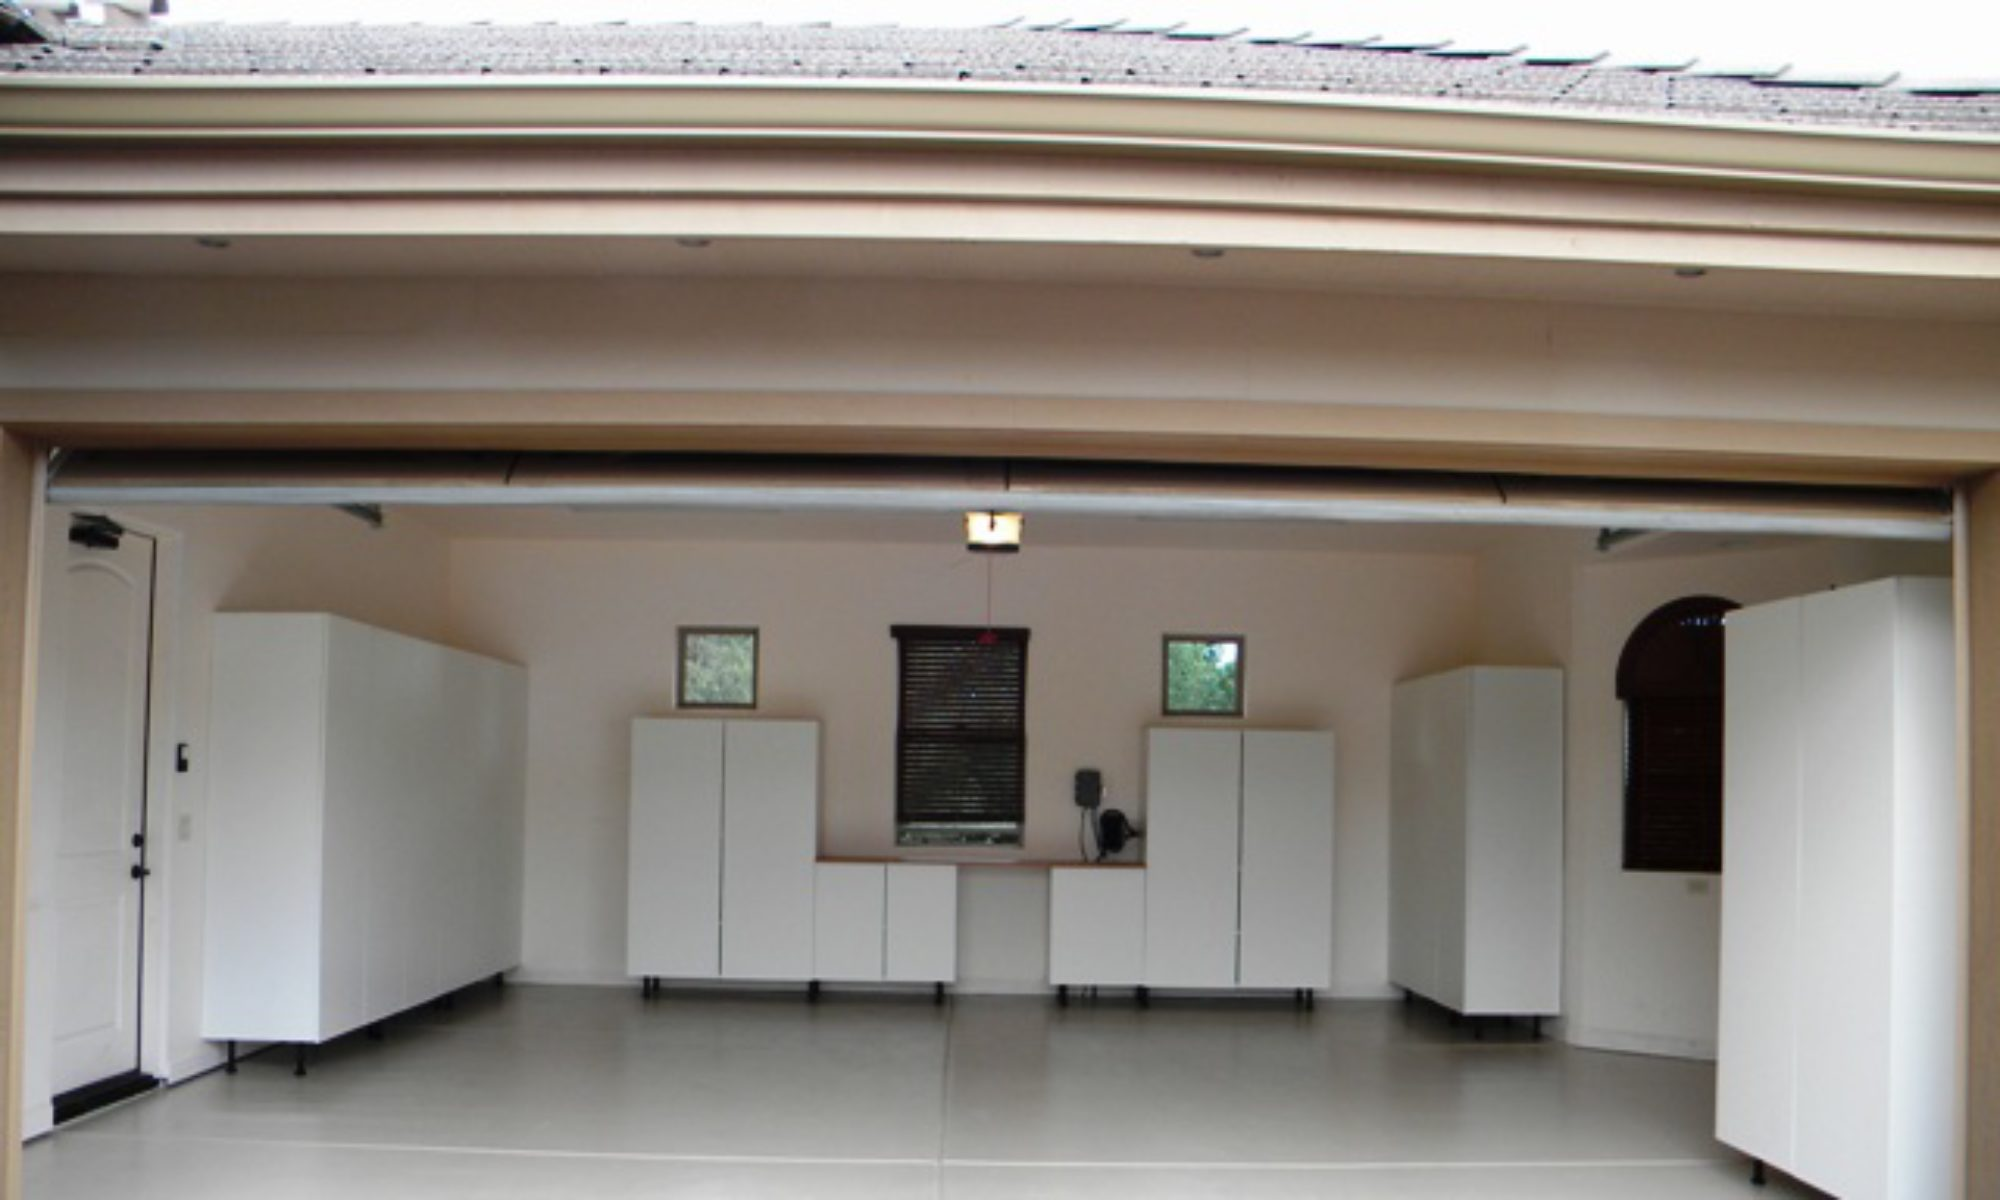 inc san garage vegas order made az saskatoon dallas las steel backyards online phoenix diego cost orange custom cabinets county ca arizona interiors plans